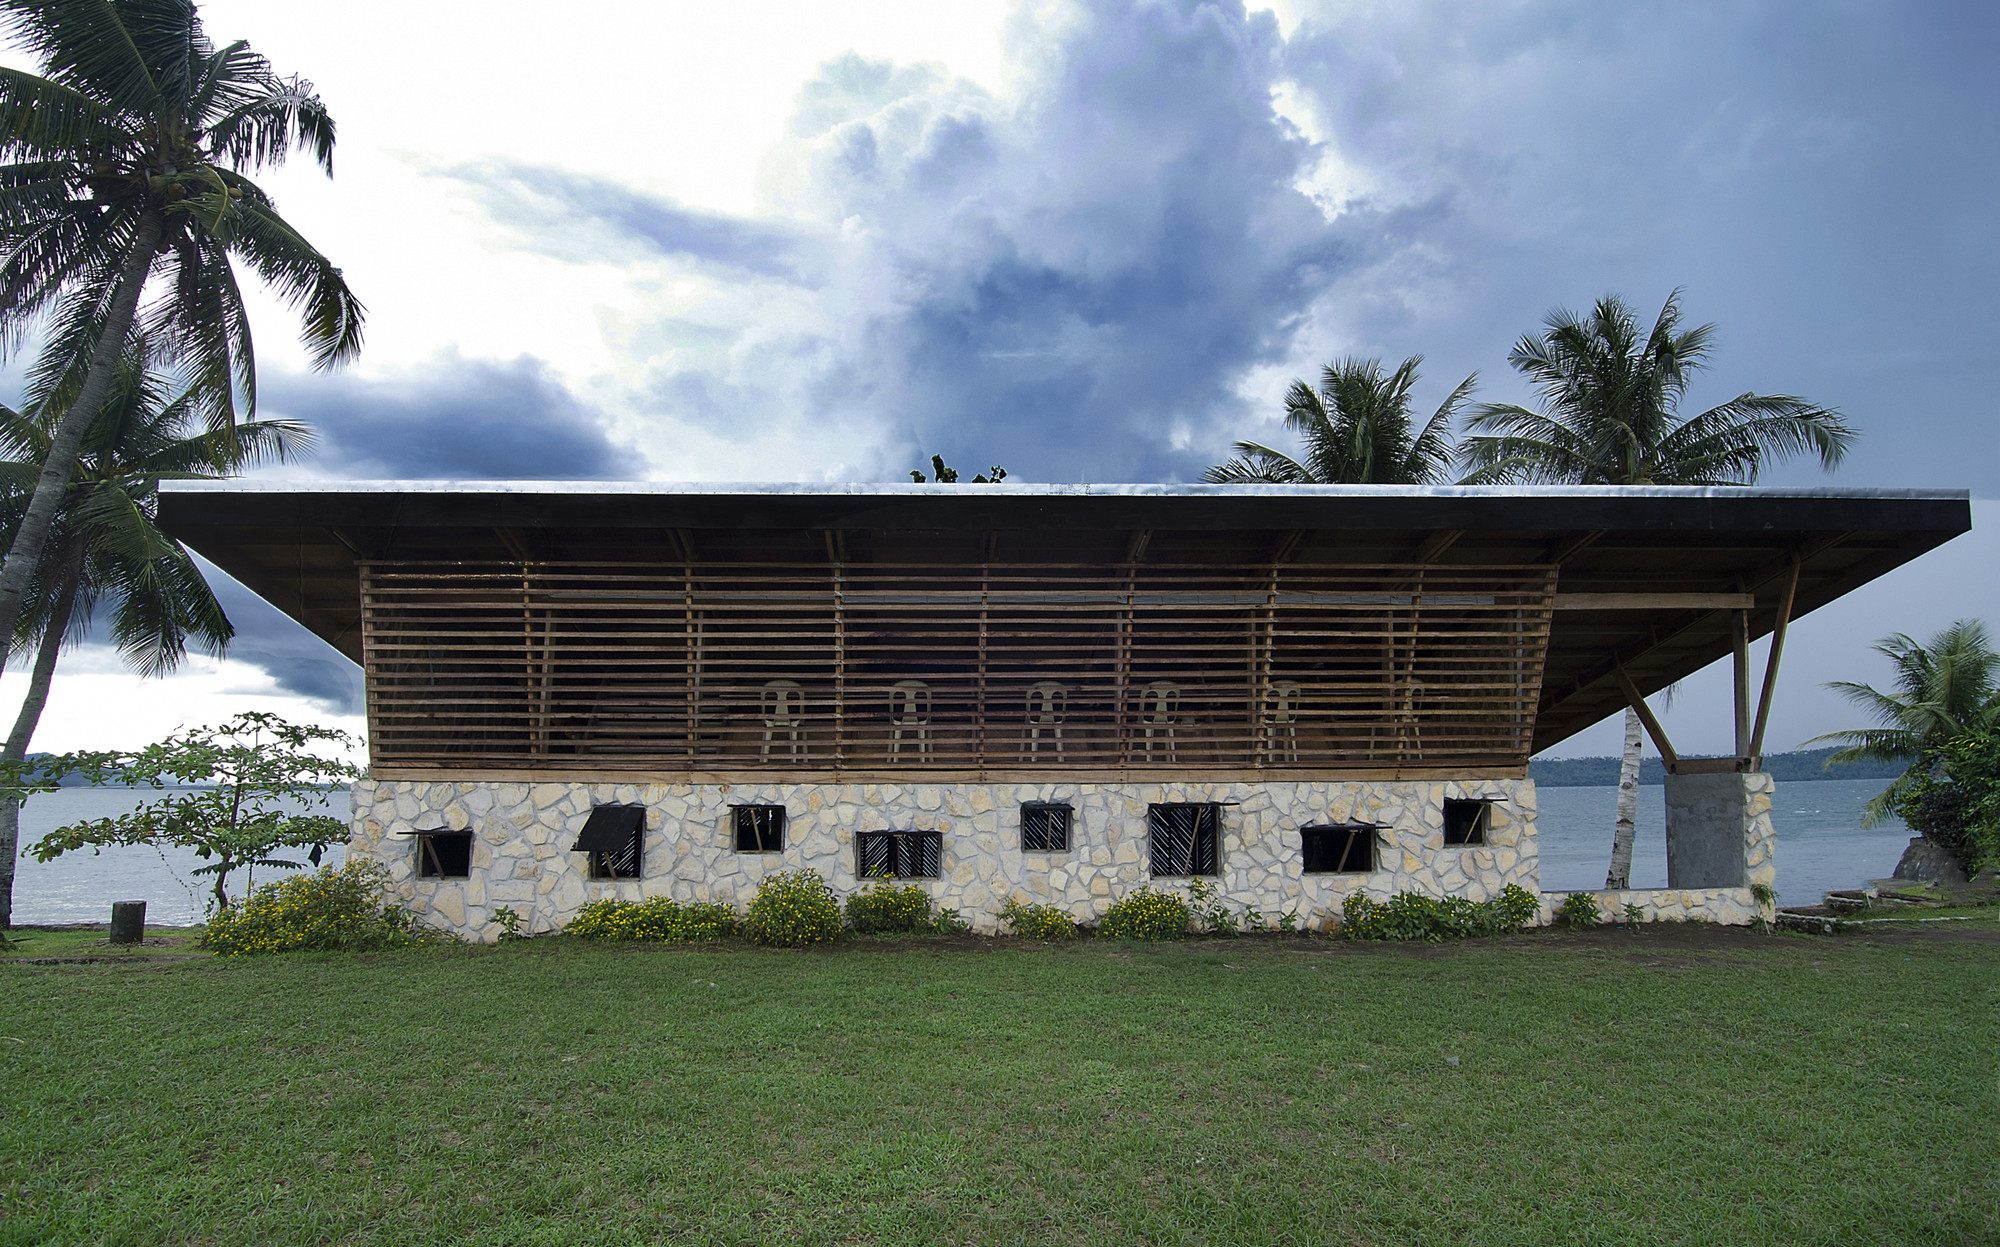 Study Center in Tacloban / Workshop, Courtesy of Workshop